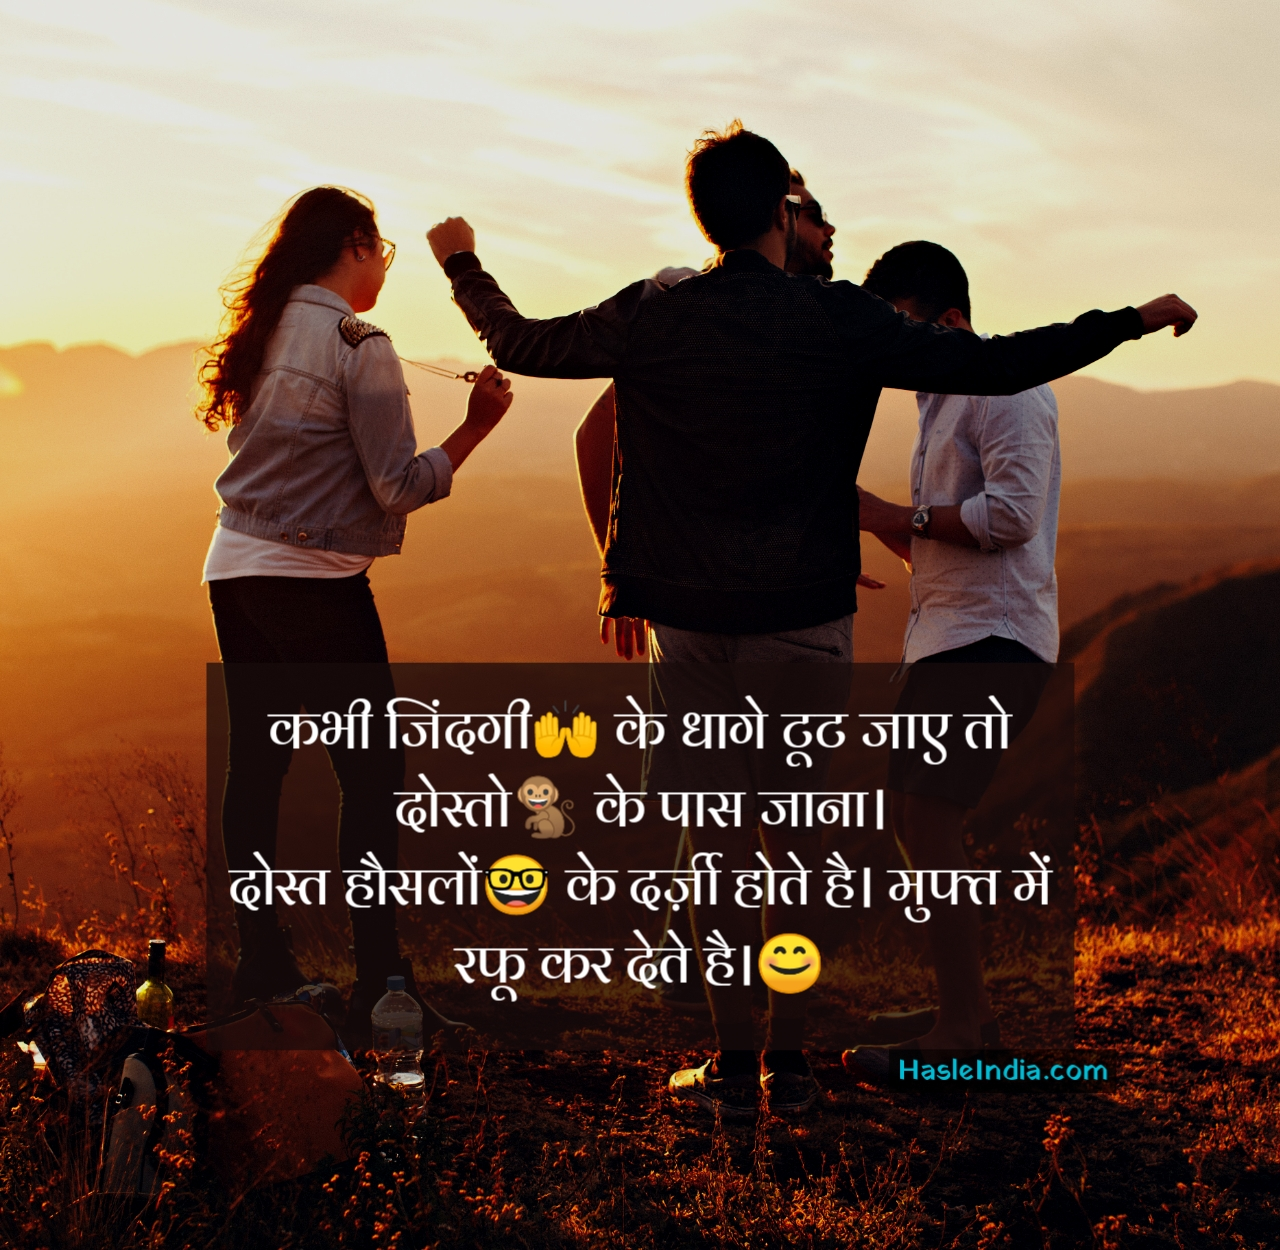 Friendship shayari, hindi shayari, shayari for friends,dosti shyari, friendship day shayari,